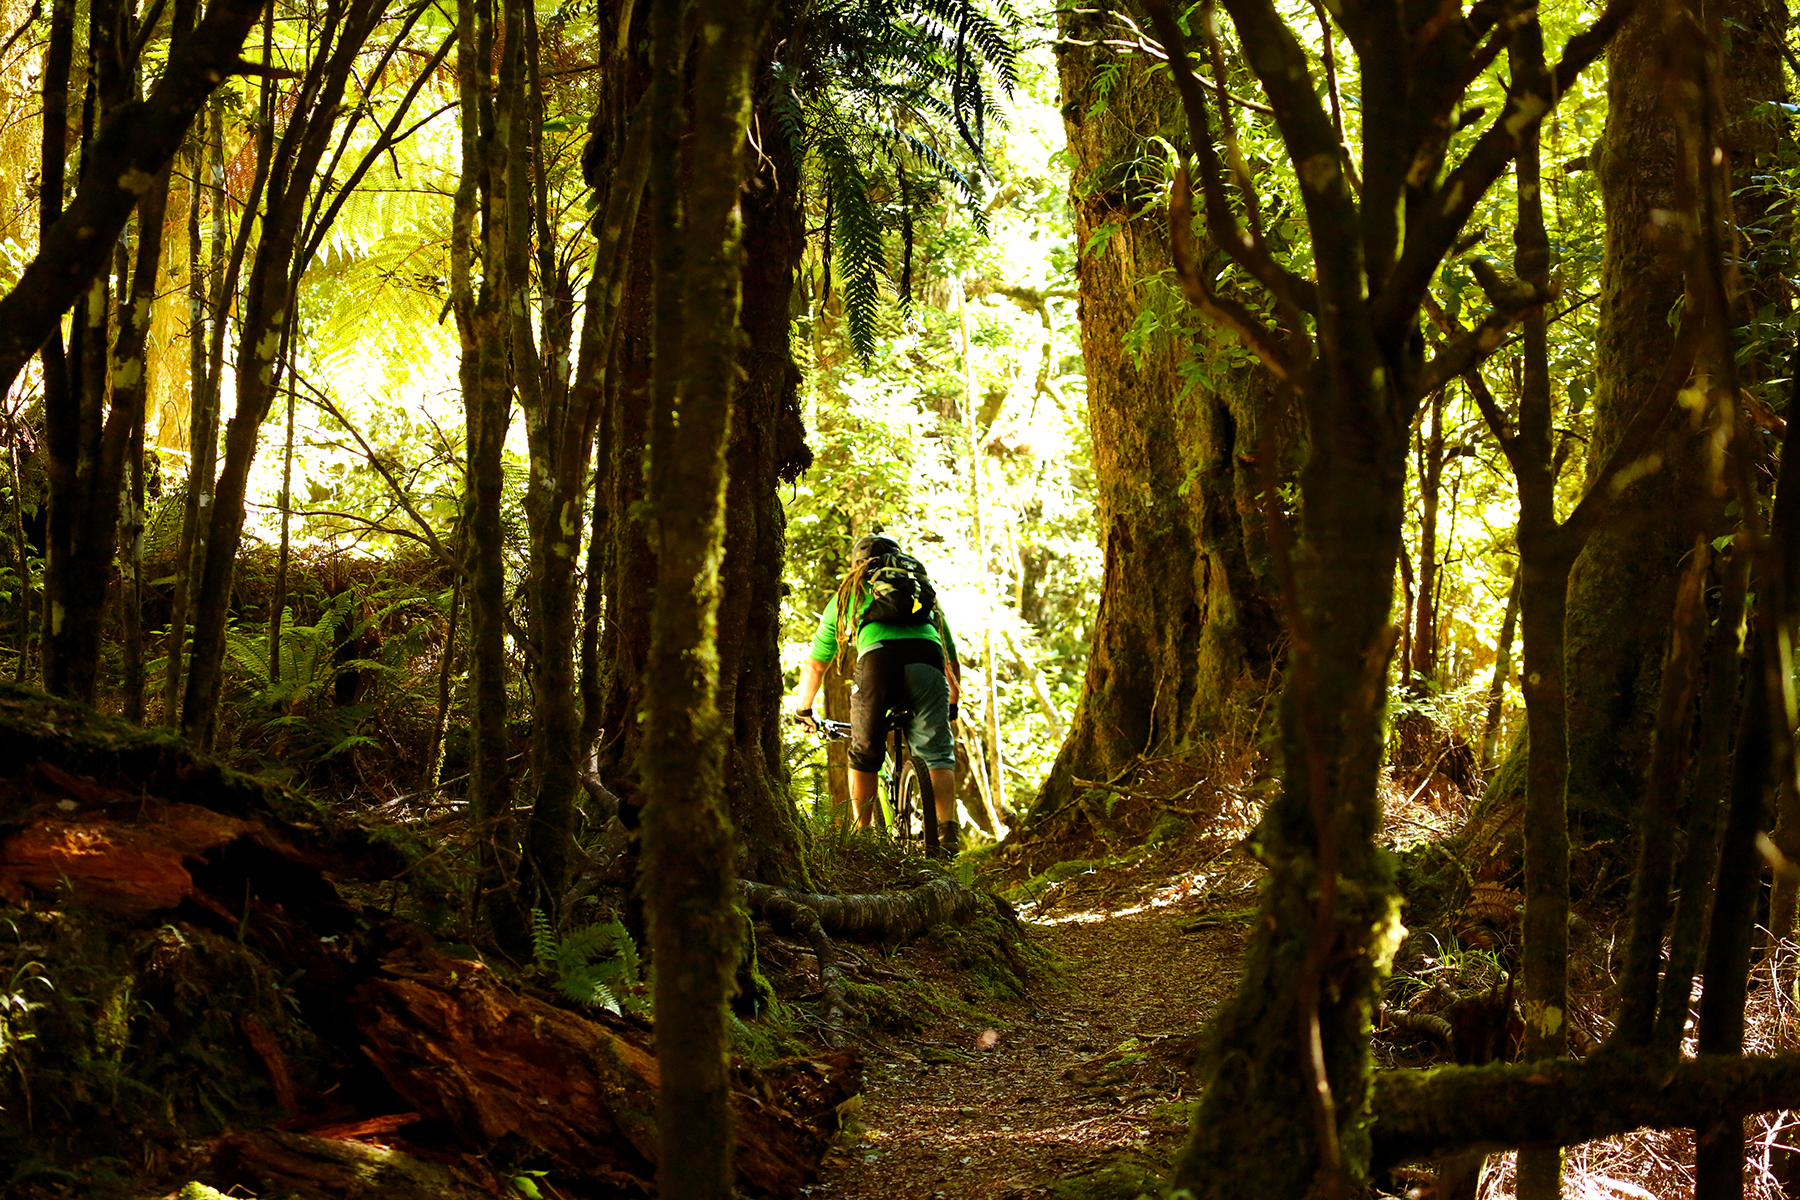 Te_Iringa_Mountain_Bike_Trail_Image_1U0A8768